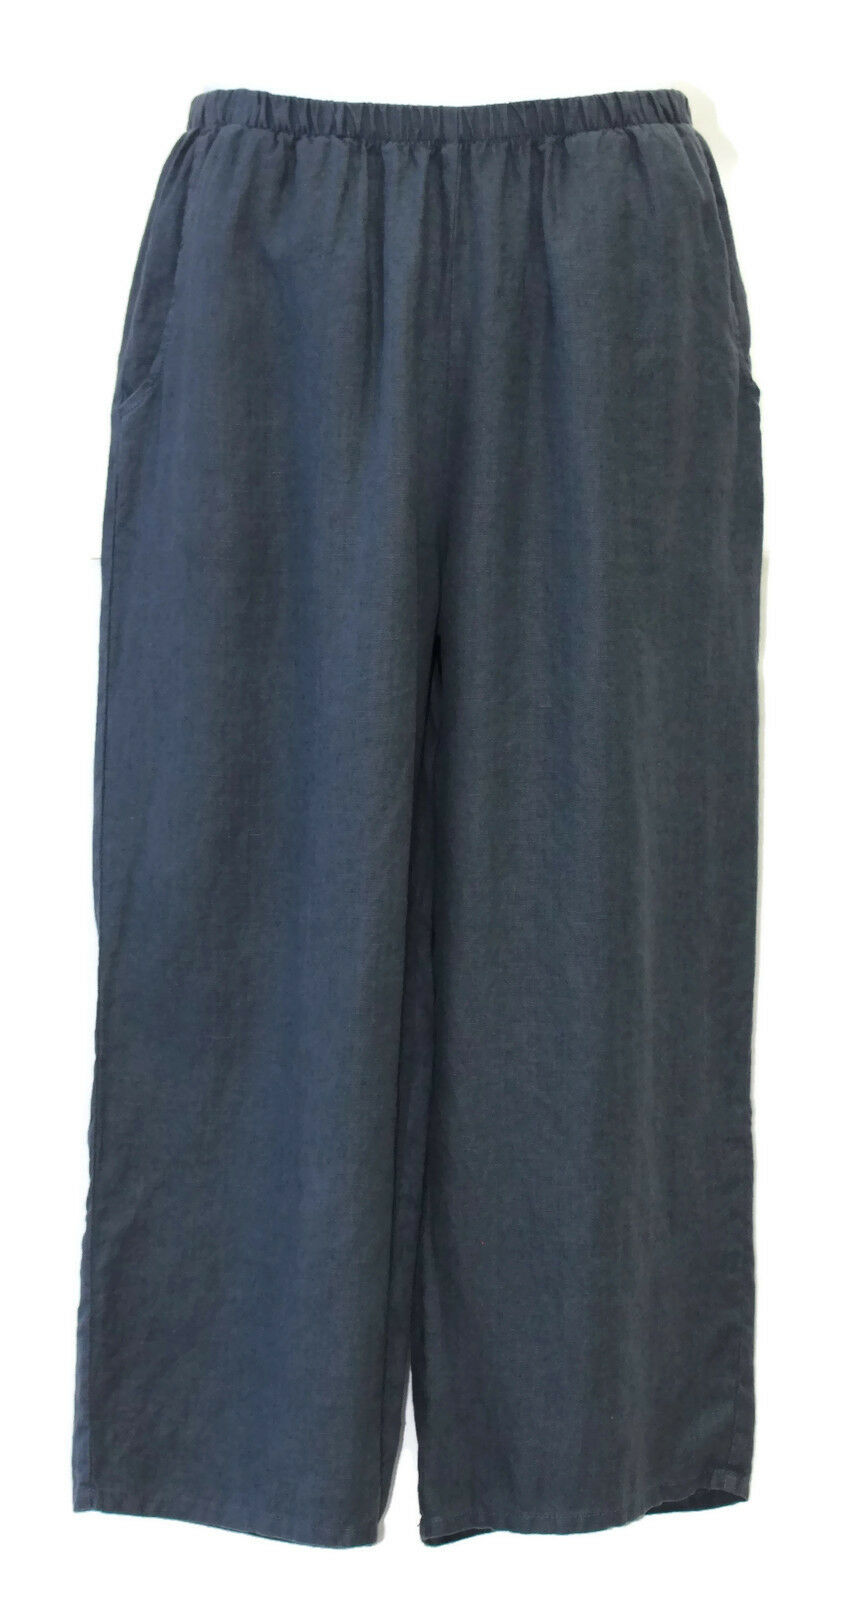 Flax Designs Floods NWT Linen Wide Leg Pants Slate Größe Small